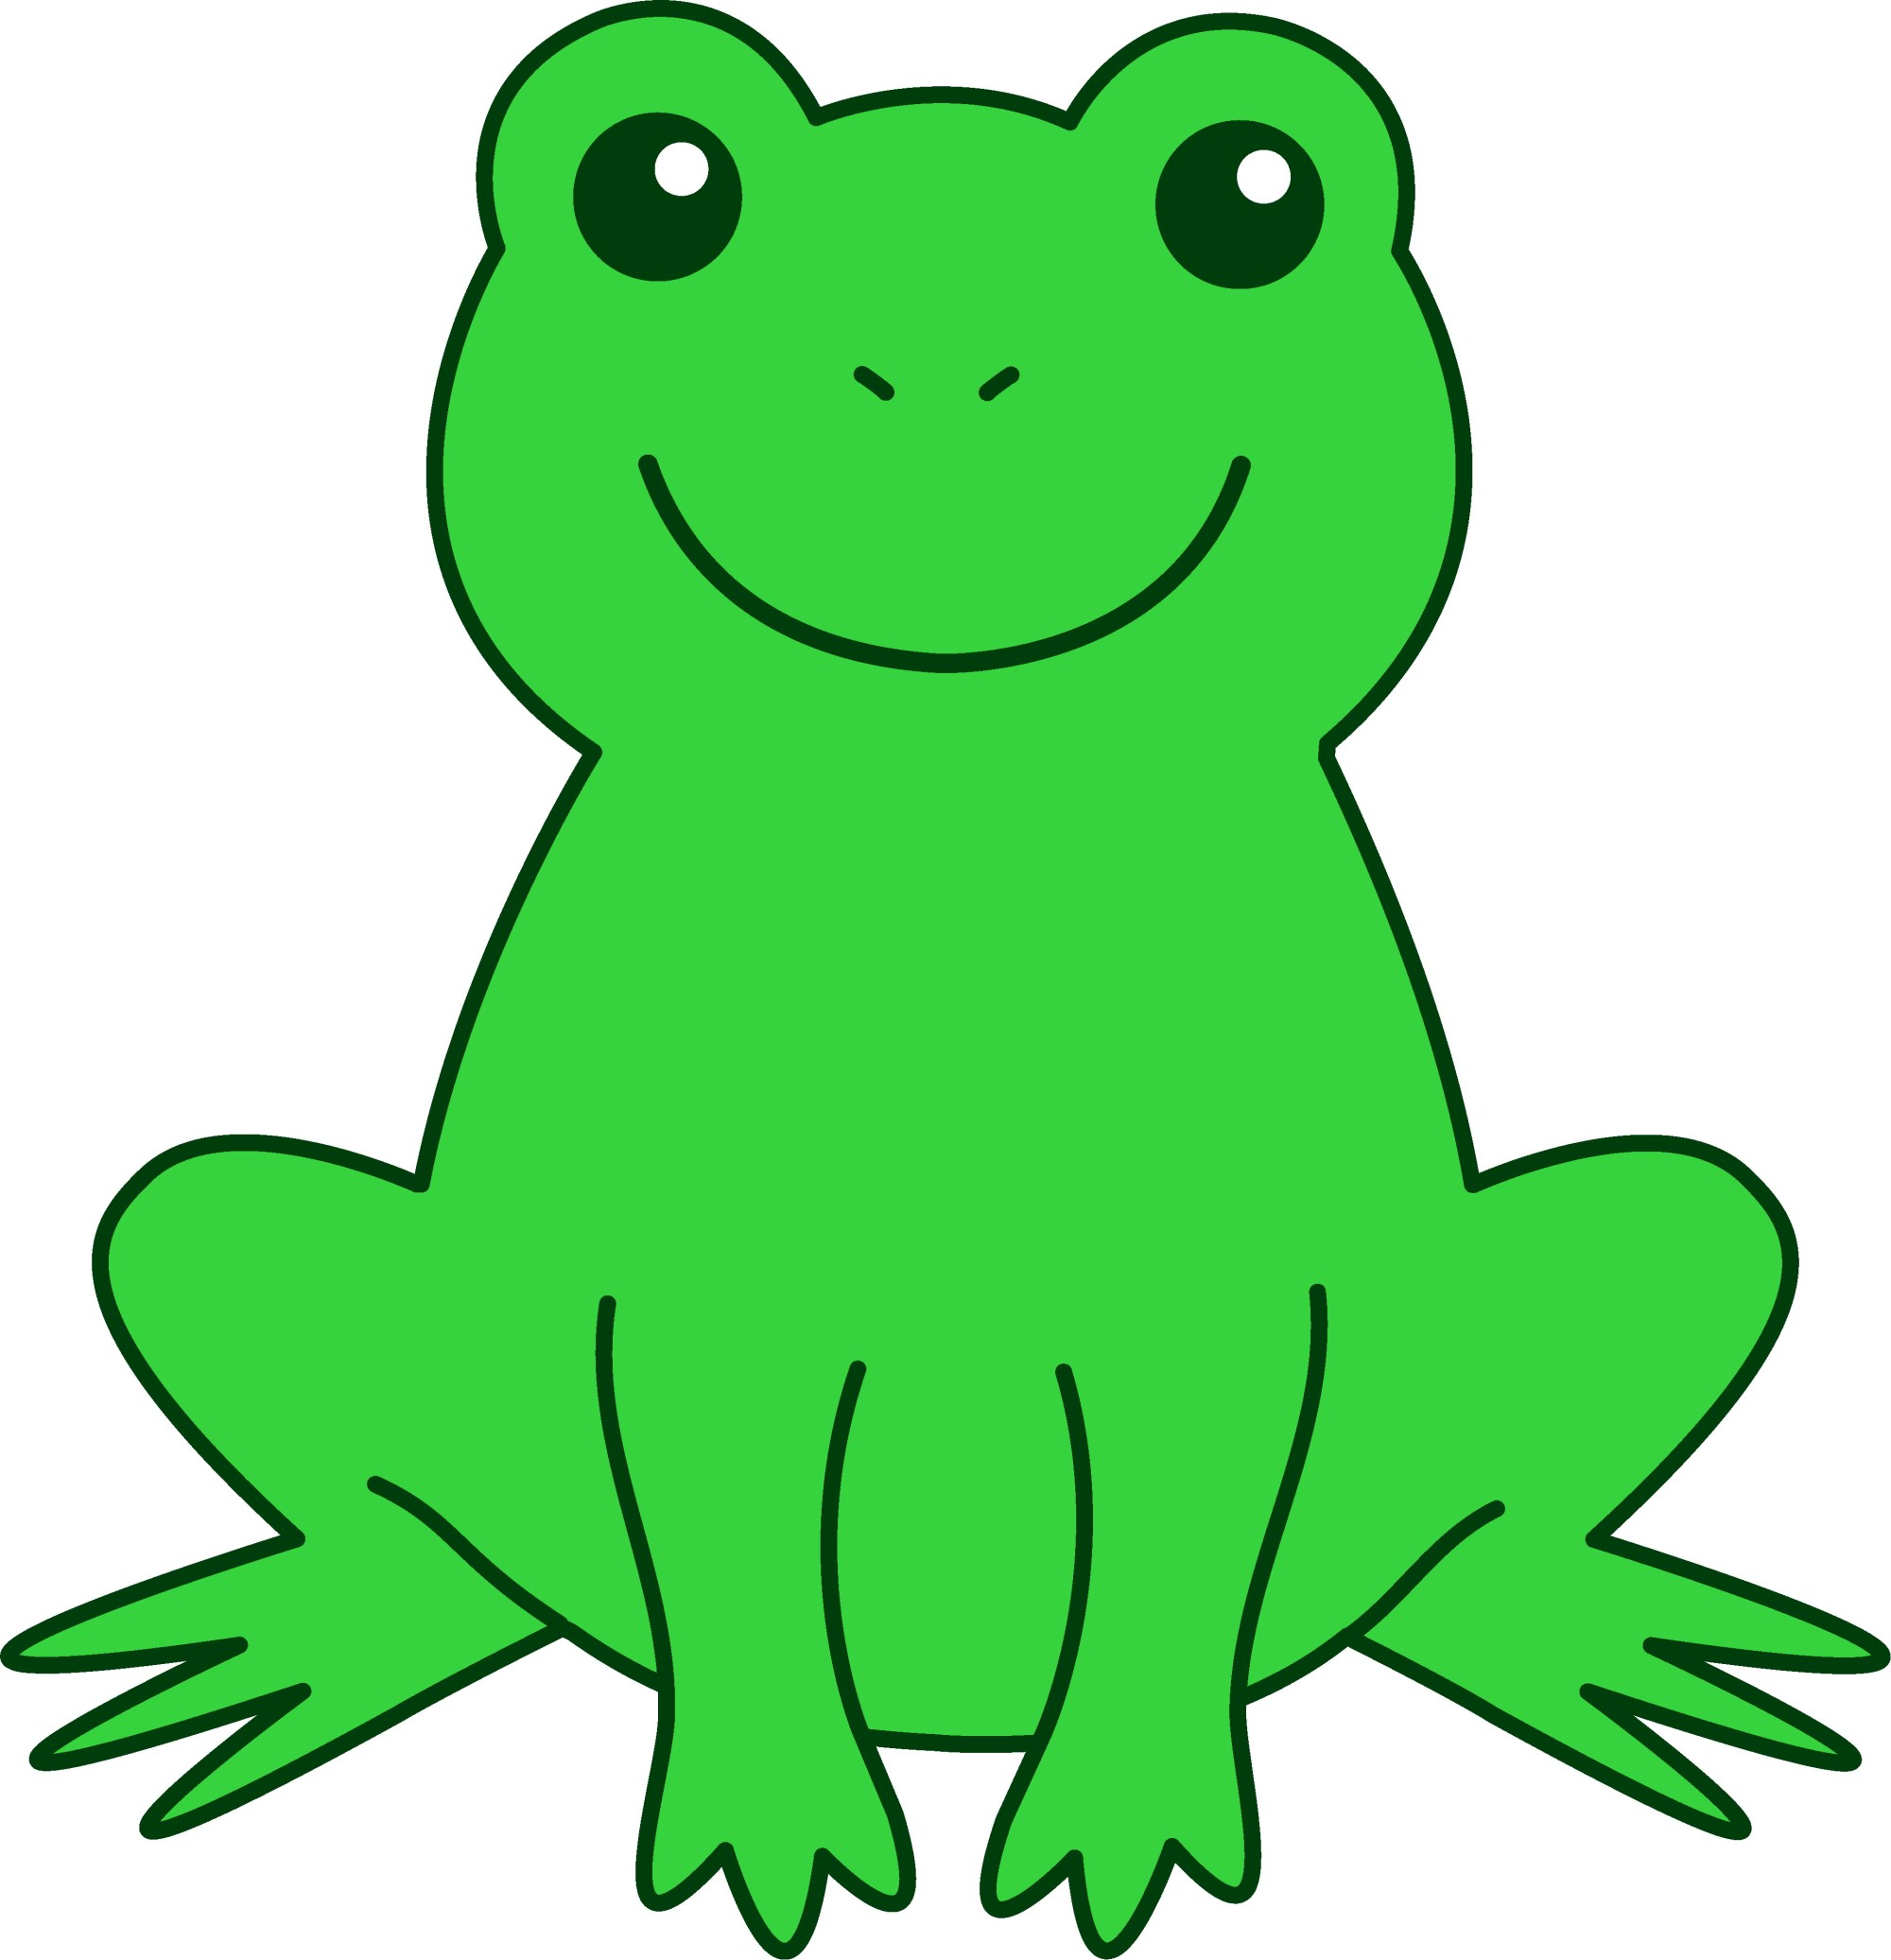 hight resolution of november 2016 logic maths problems frog clip art for teachers free clipart images